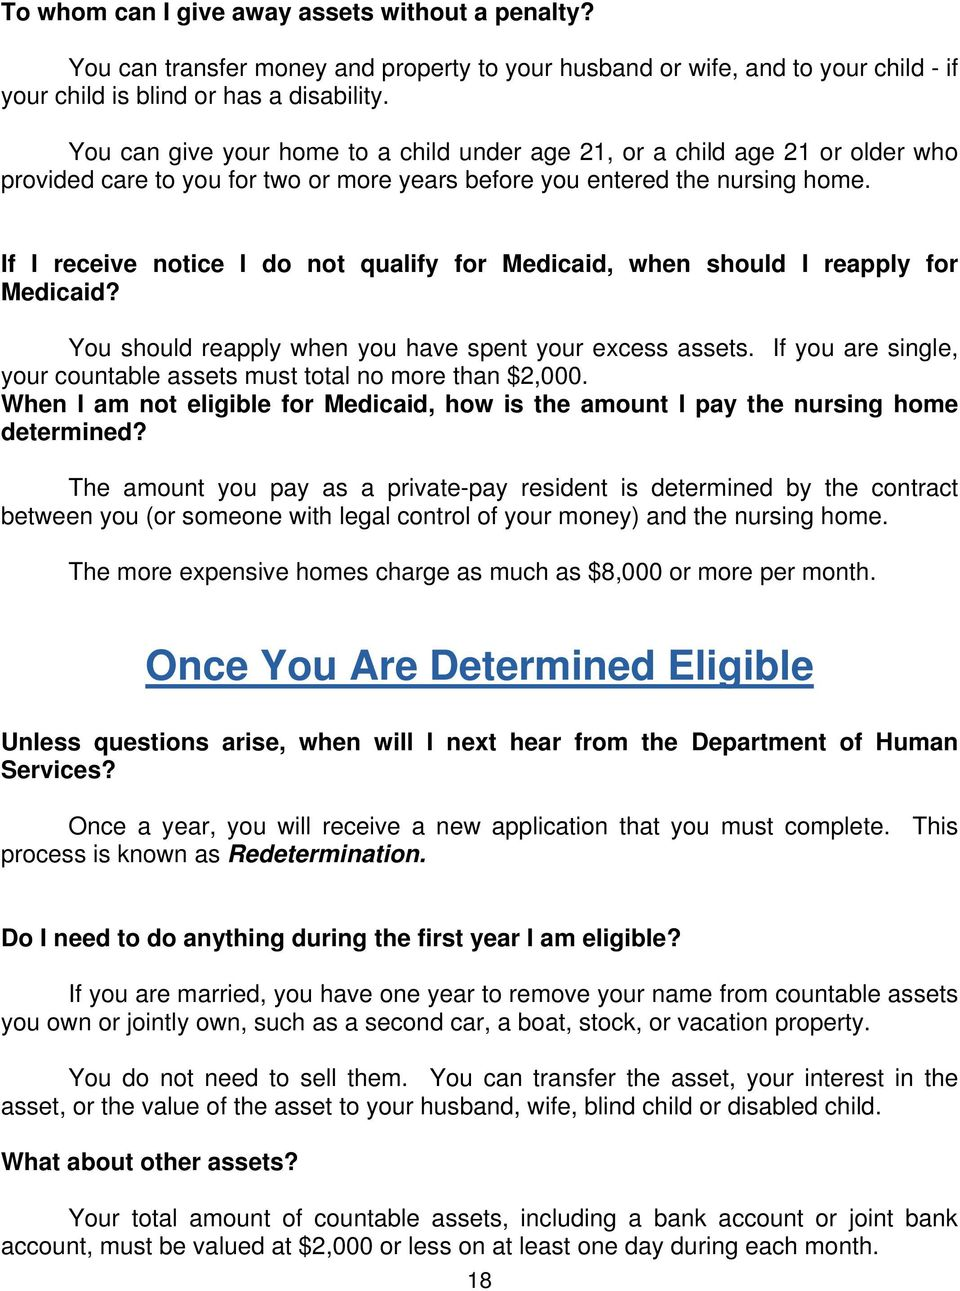 If I receive notice I do not qualify for Medicaid, when should I reapply for Medicaid? You should reapply when you have spent your excess assets.